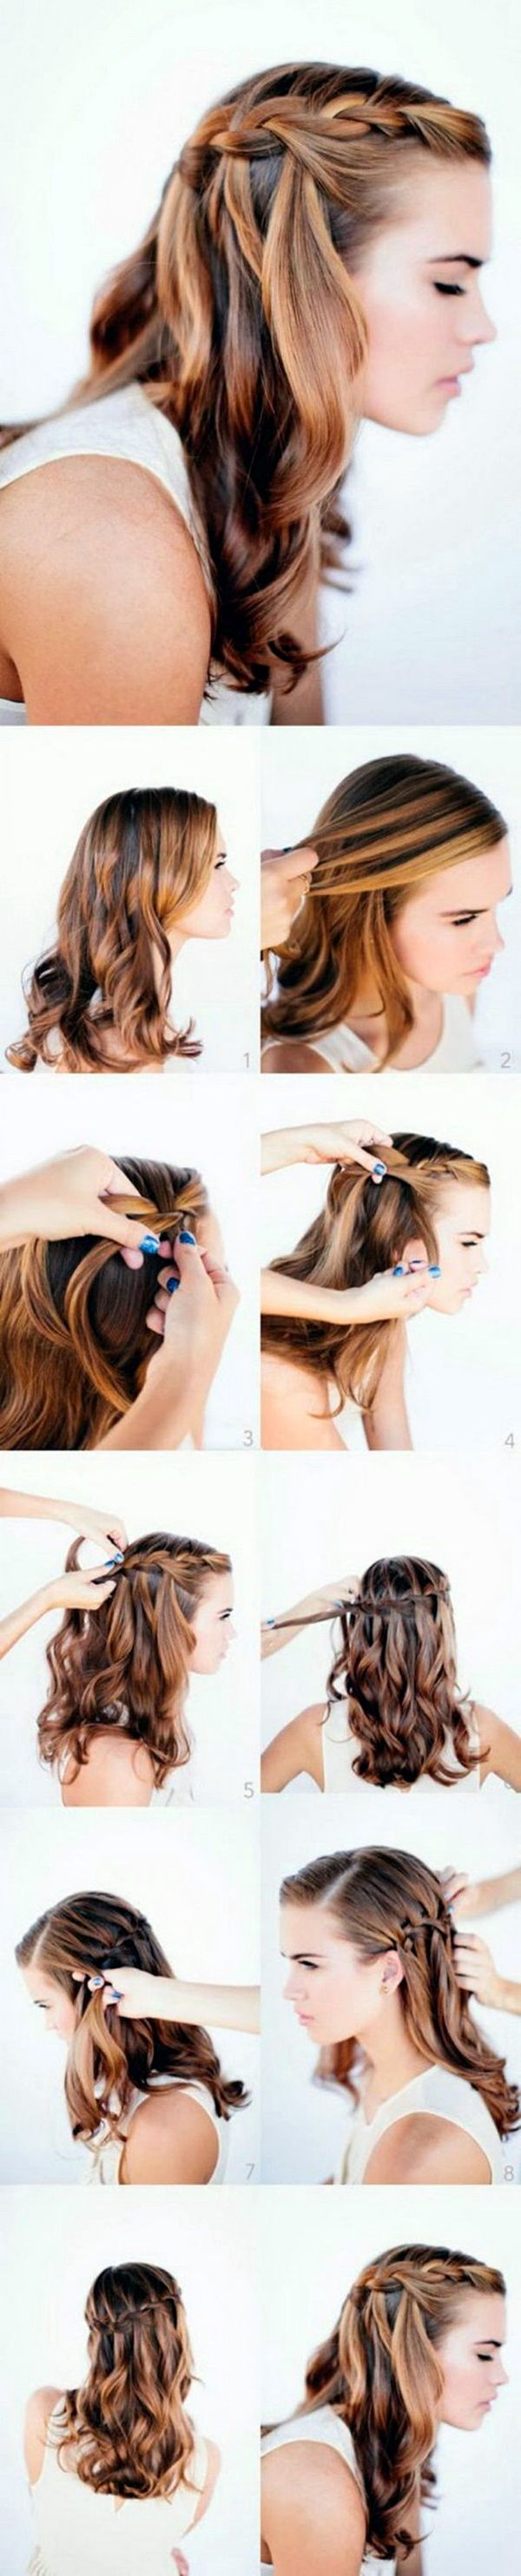 Peachy 1000 Ideas About Quick School Hairstyles On Pinterest Easy Short Hairstyles Gunalazisus